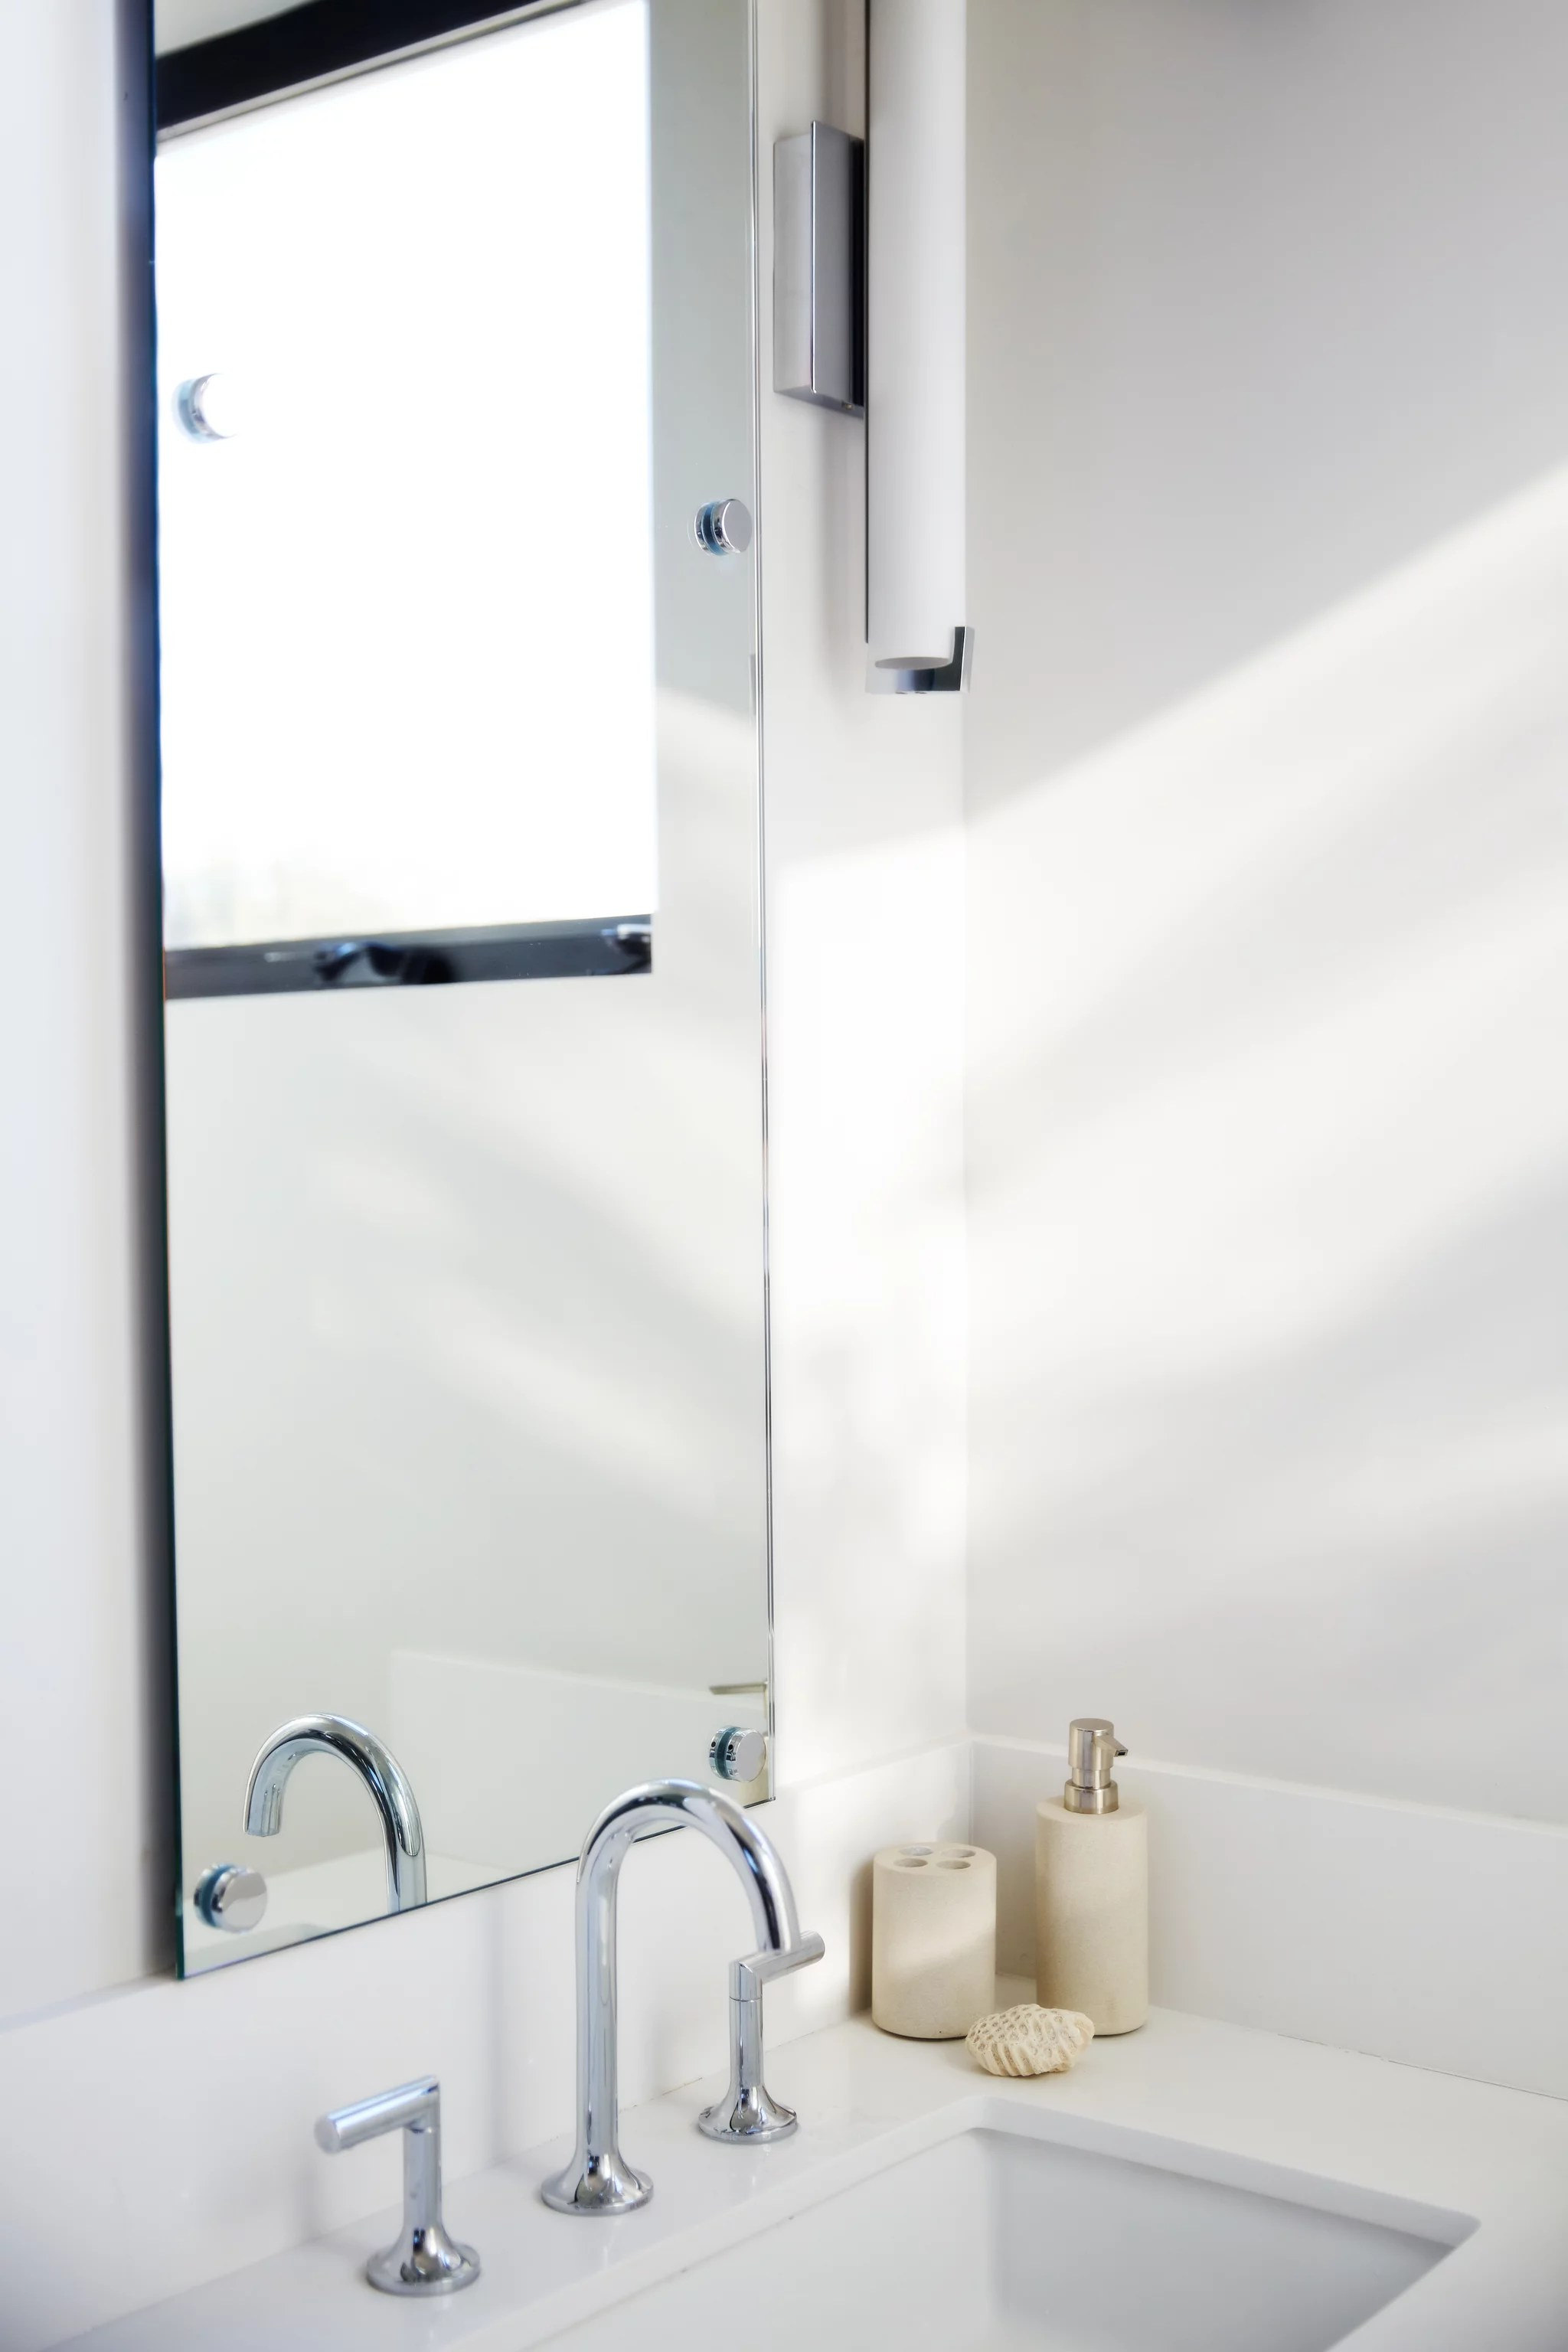 Bathroom Grout Cleaner